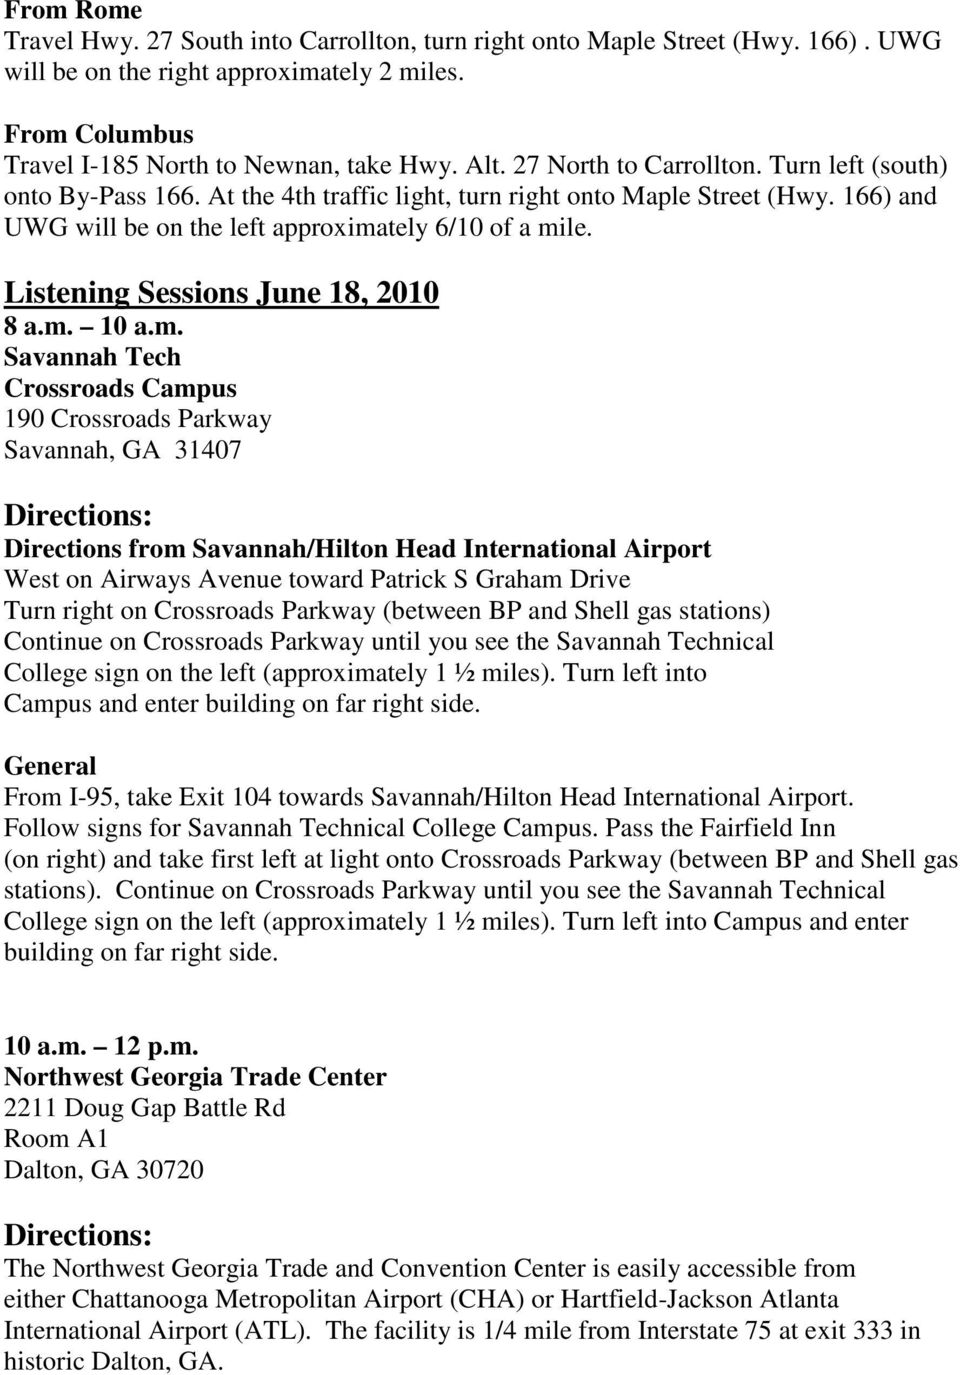 Listening Sessions June 18, 2010 Savannah Tech Crossroads Campus 190 Crossroads Parkway Savannah, GA 31407 Directions from Savannah/Hilton Head International Airport West on Airways Avenue toward